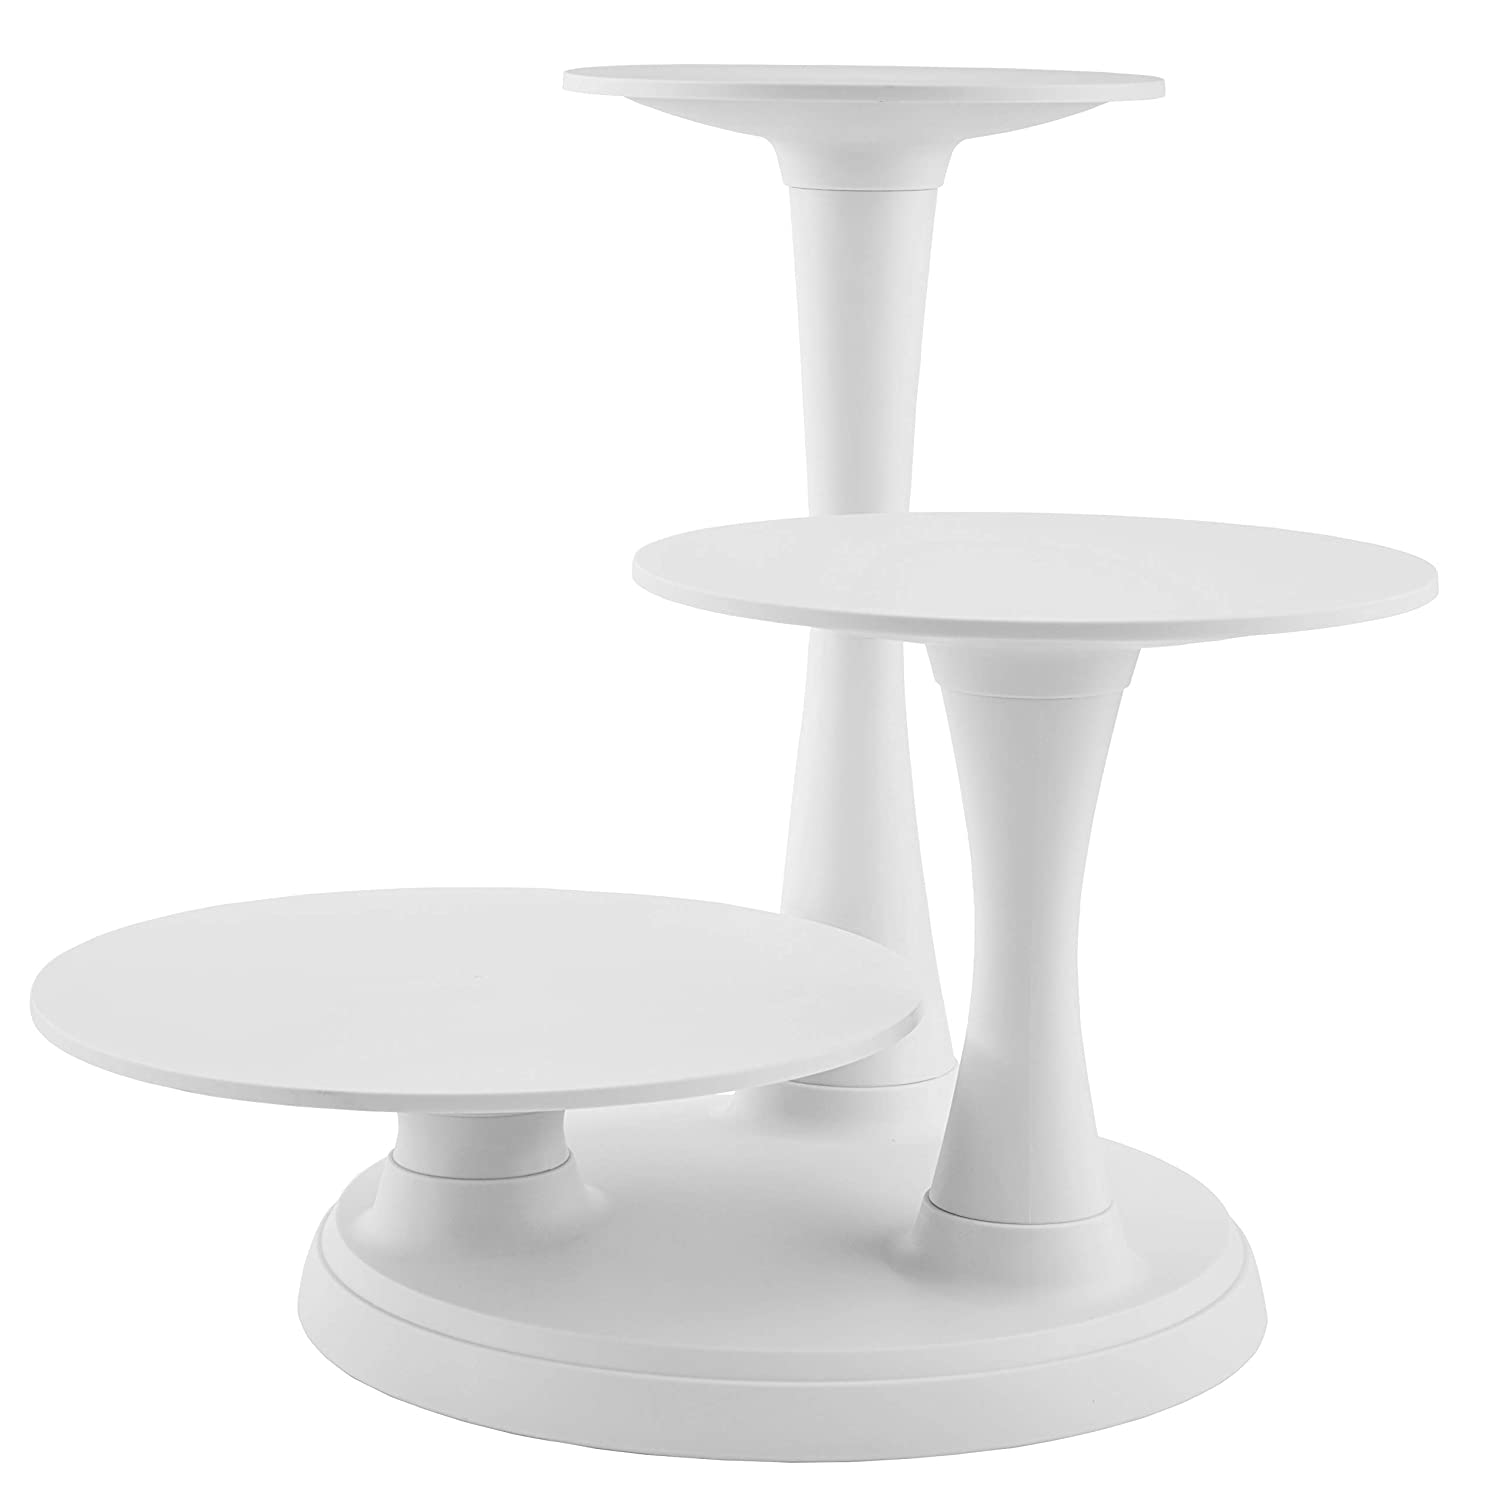 Buy Wilton 3-Tier Pillar Cake Stand Set Online at Low Prices in India -  Amazon.in